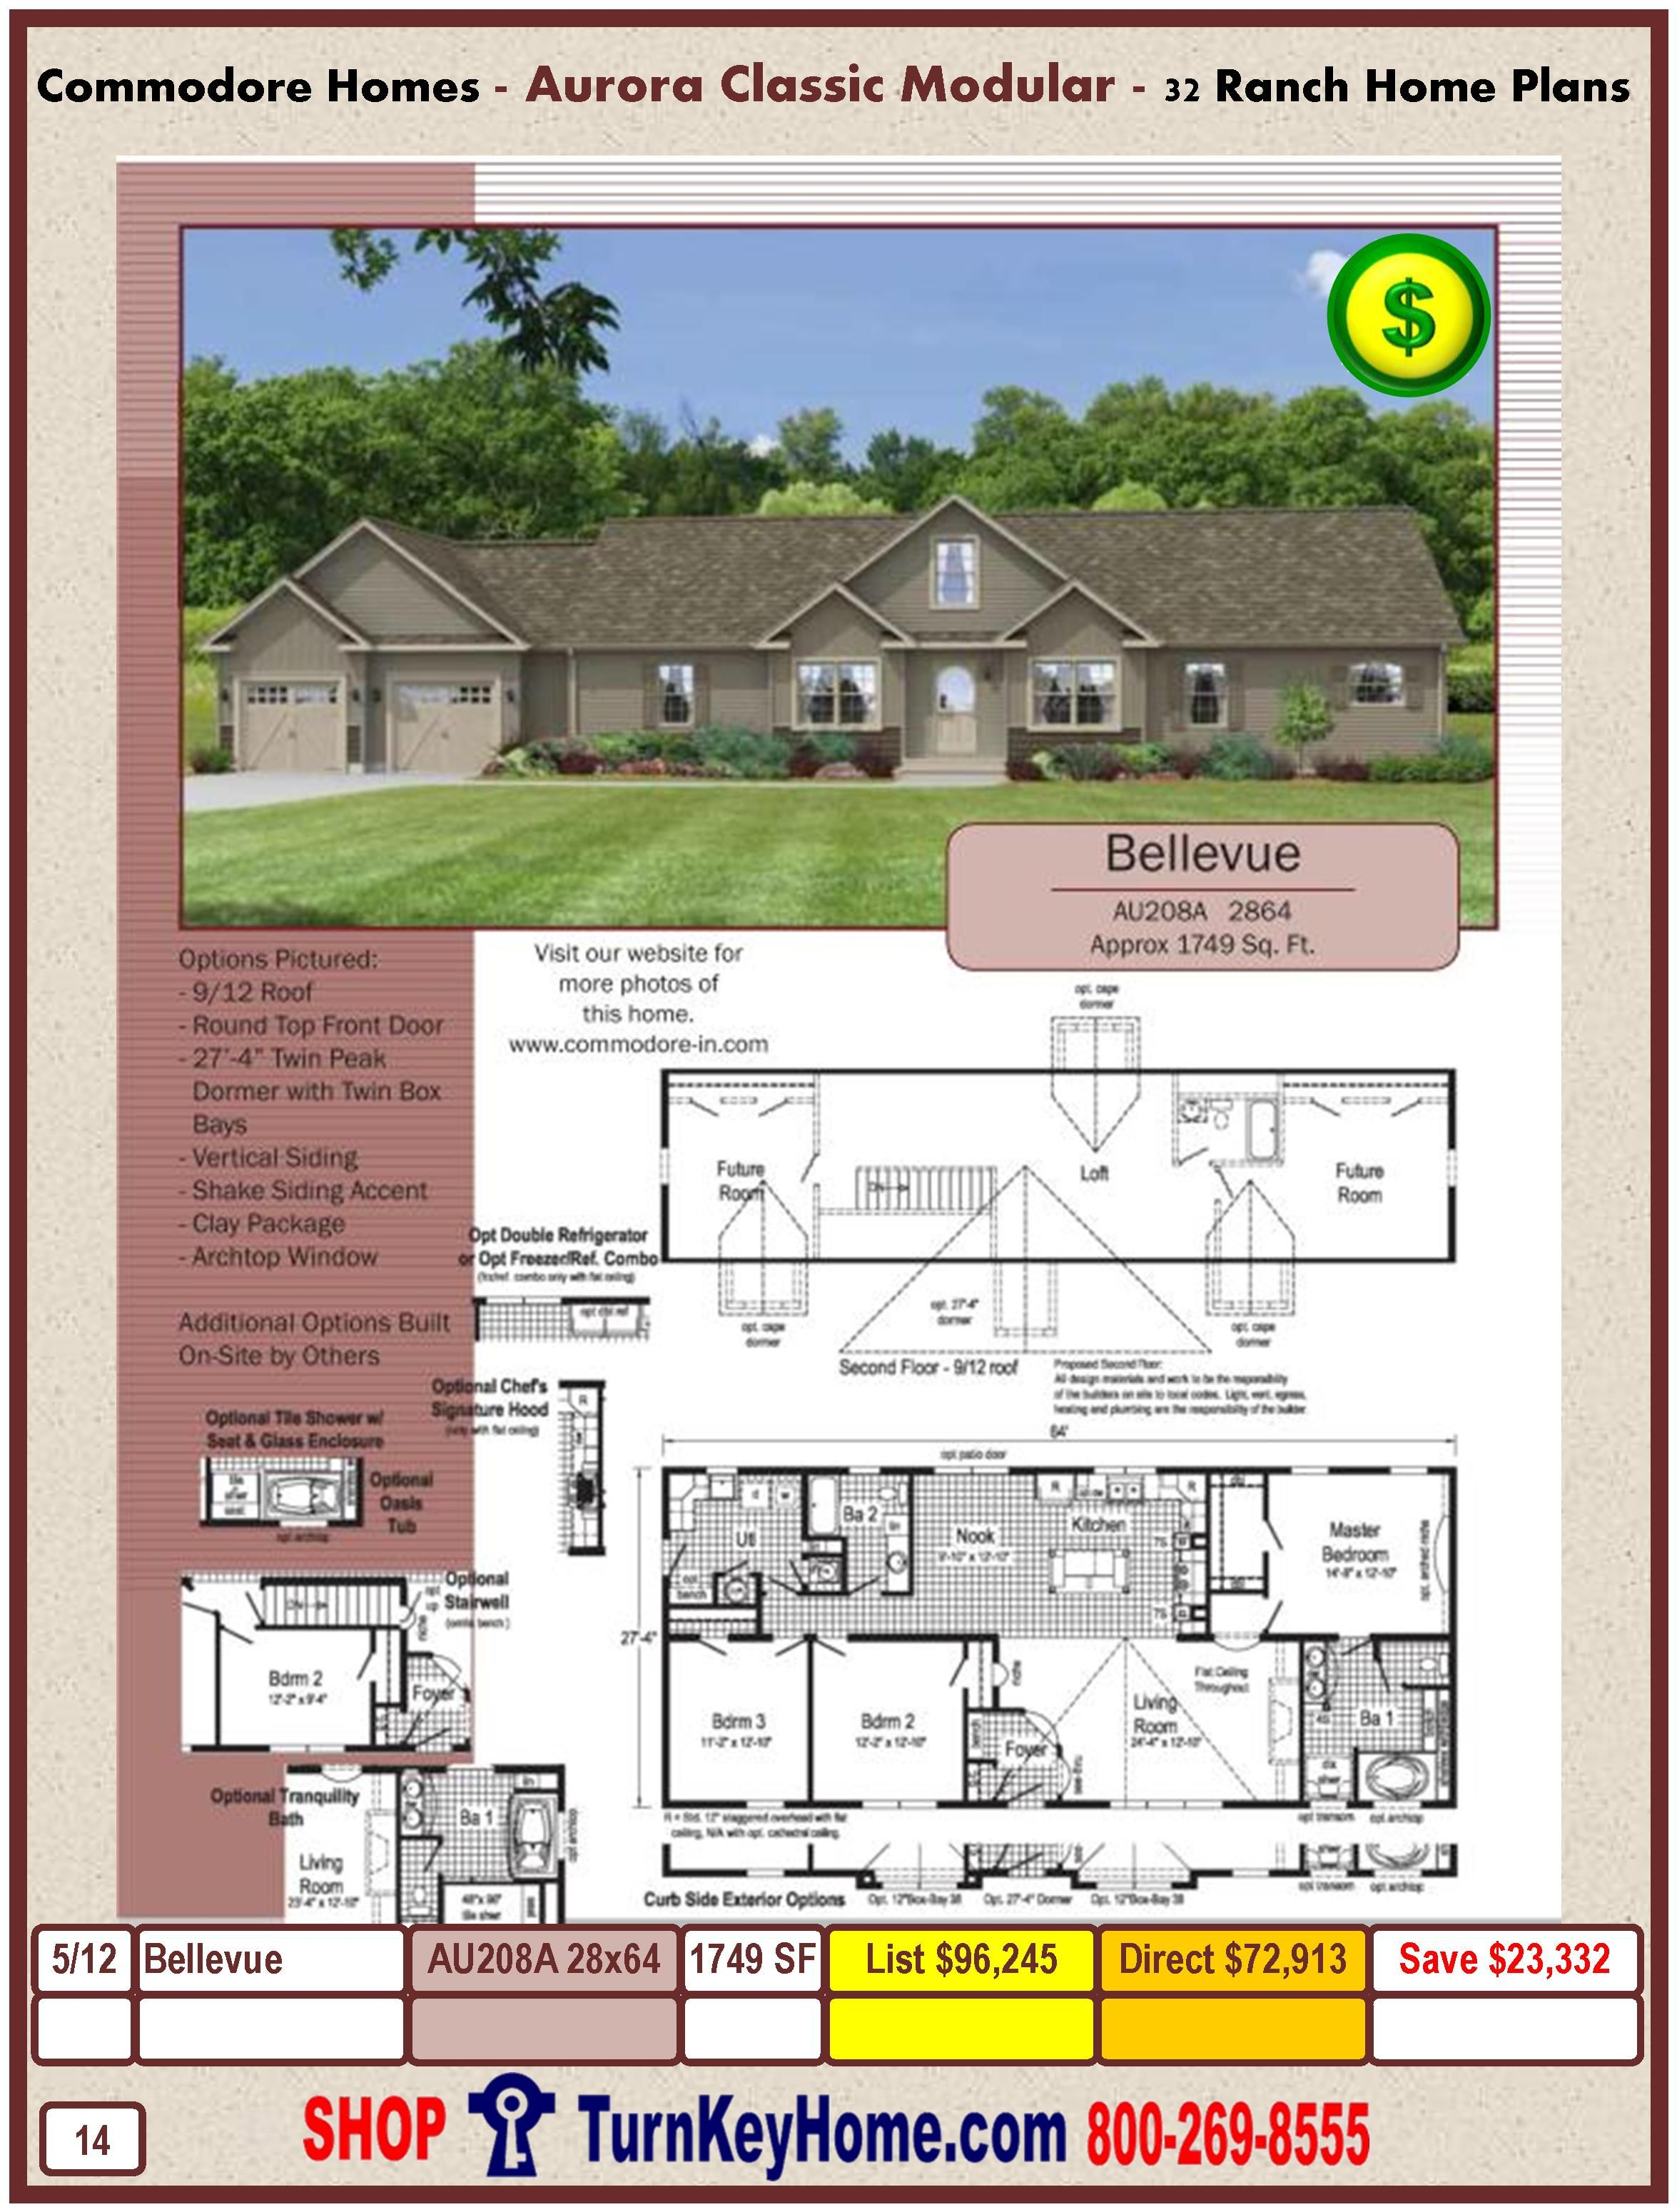 Modular.Commodore.Homes.Aurora.Clic.Ranch.Home.Series.Catalog ... on commodore mobile home pricing, single wide homes floor plans, modular home floor plans,